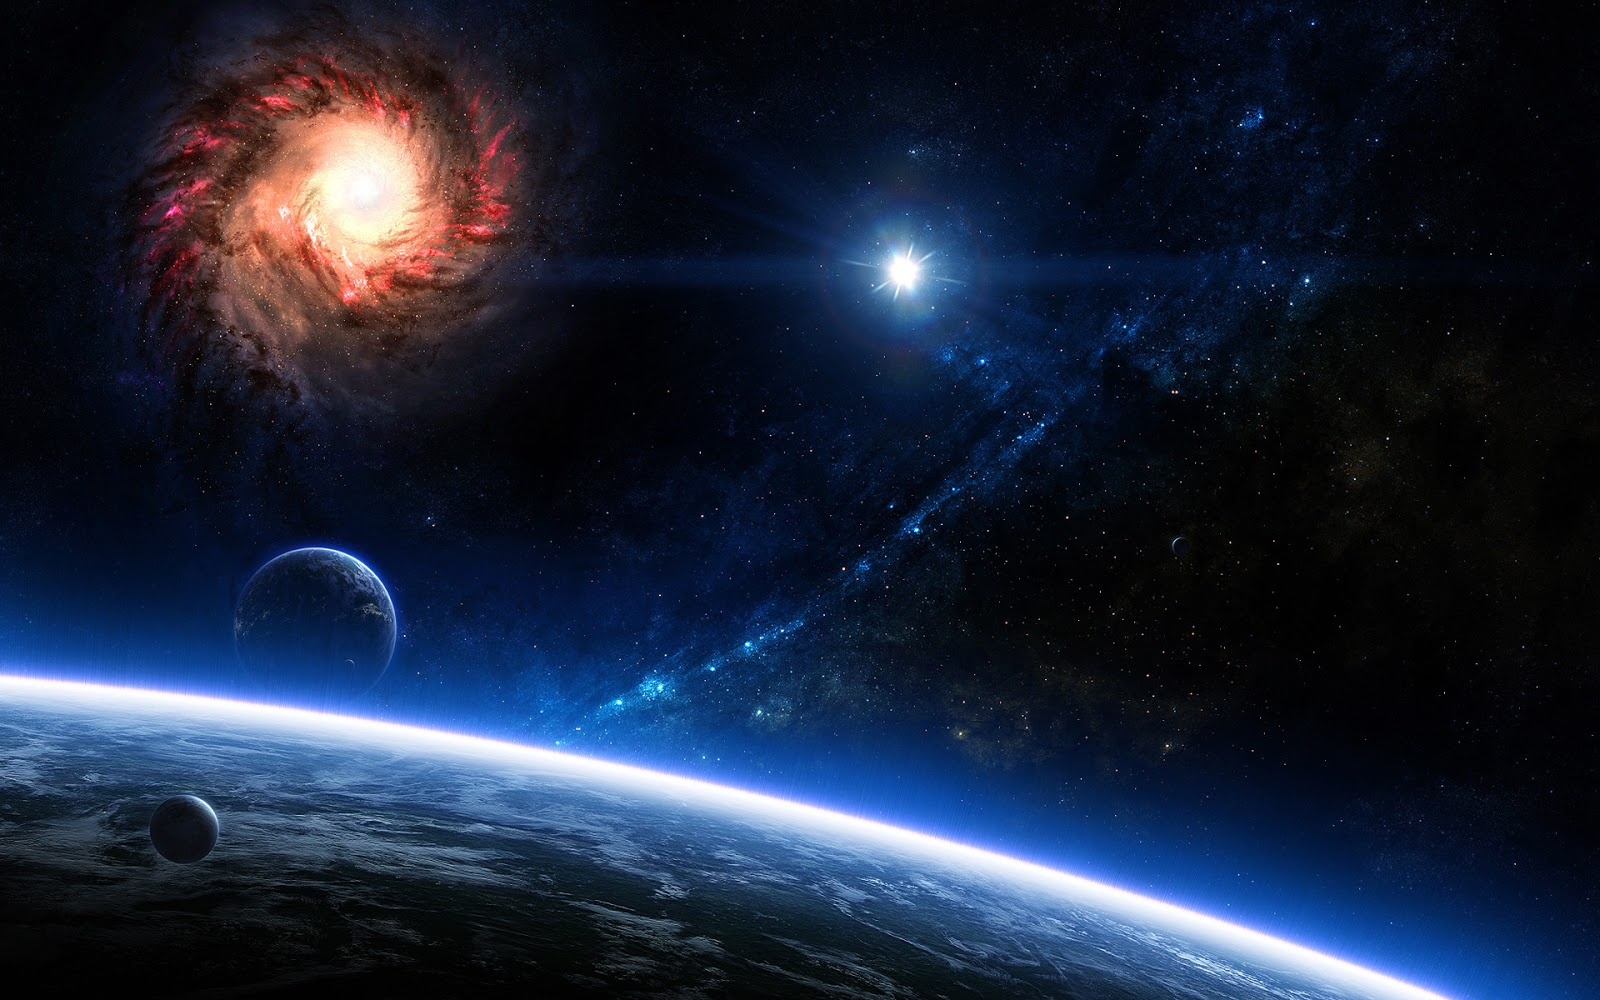 Space Wallpaper 1920 x 1200